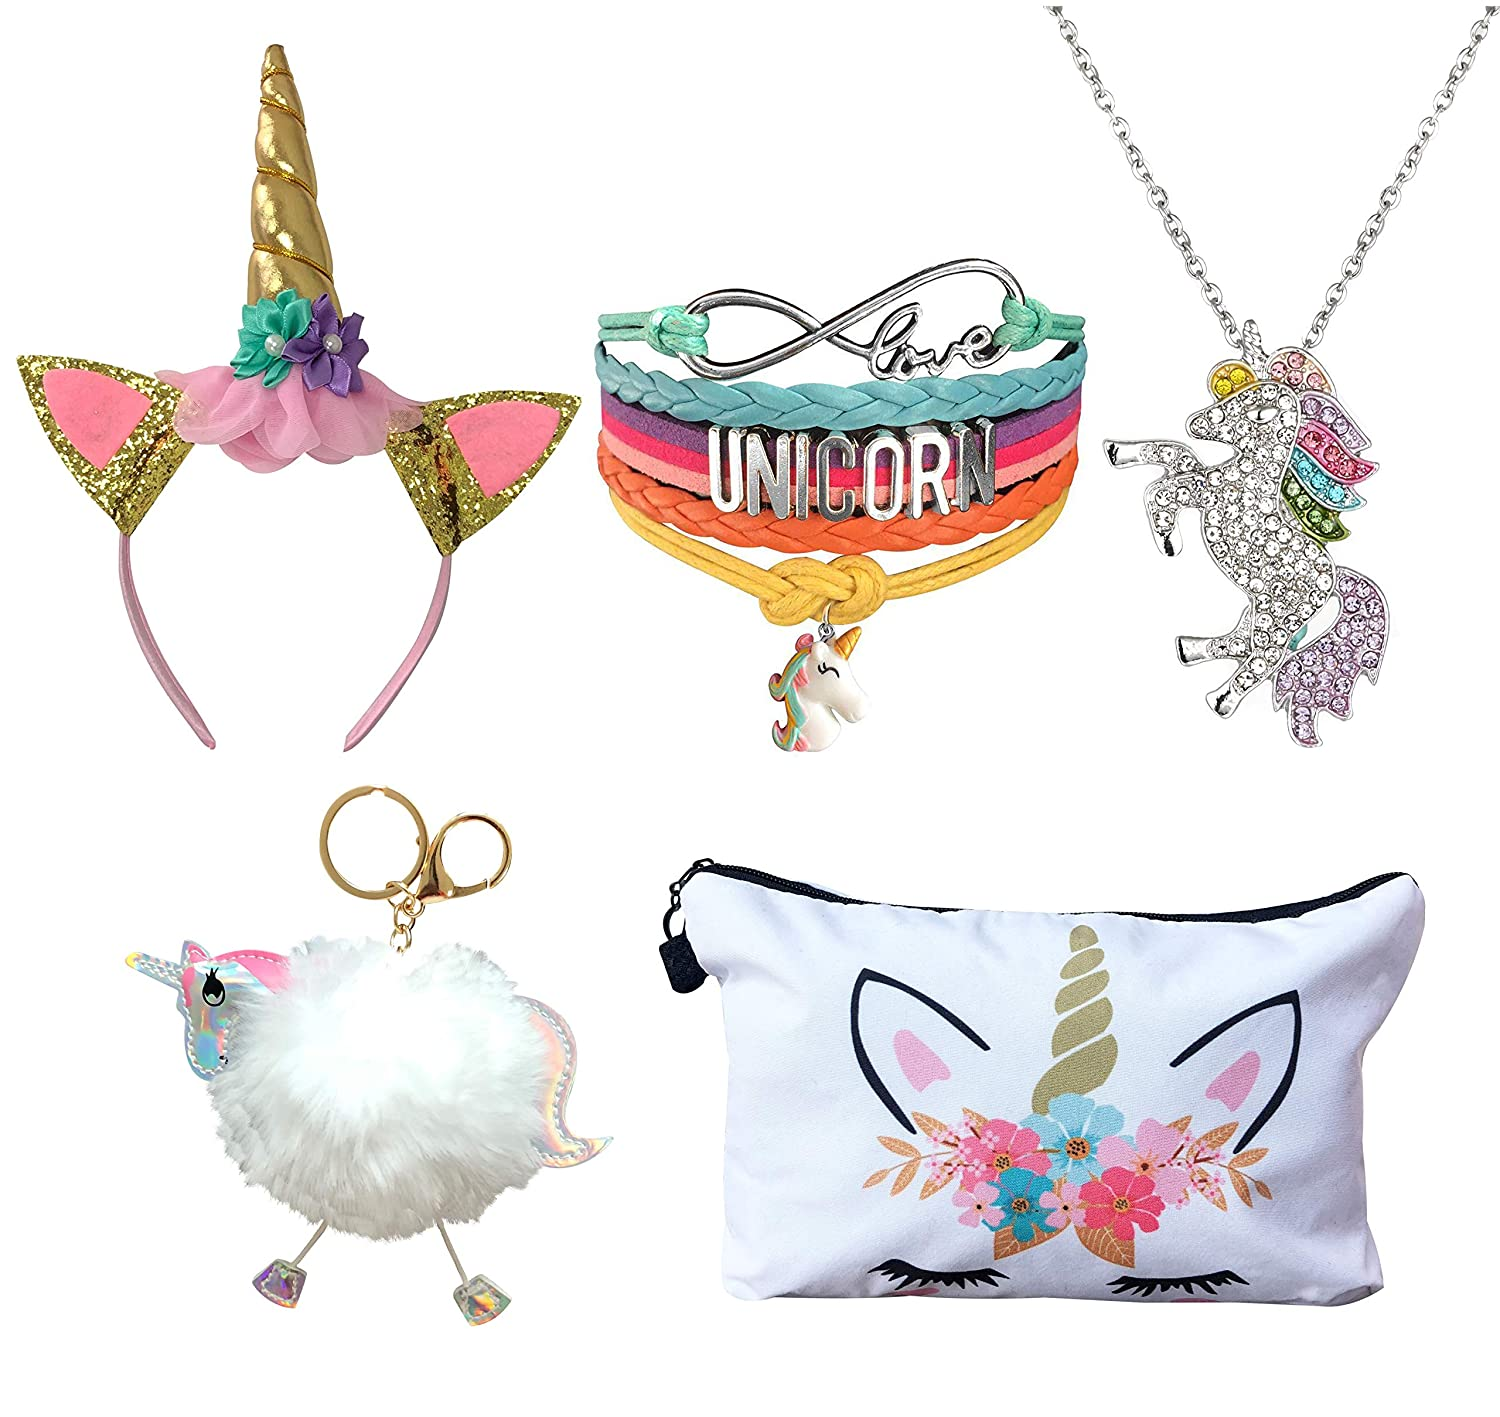 5 Piece Unicorn Gift Set - Unicorn Makeup Bag/Unicorn Bracelet/Unicorn Necklace/Unicorn Keychain/Unicorn Headband (White)